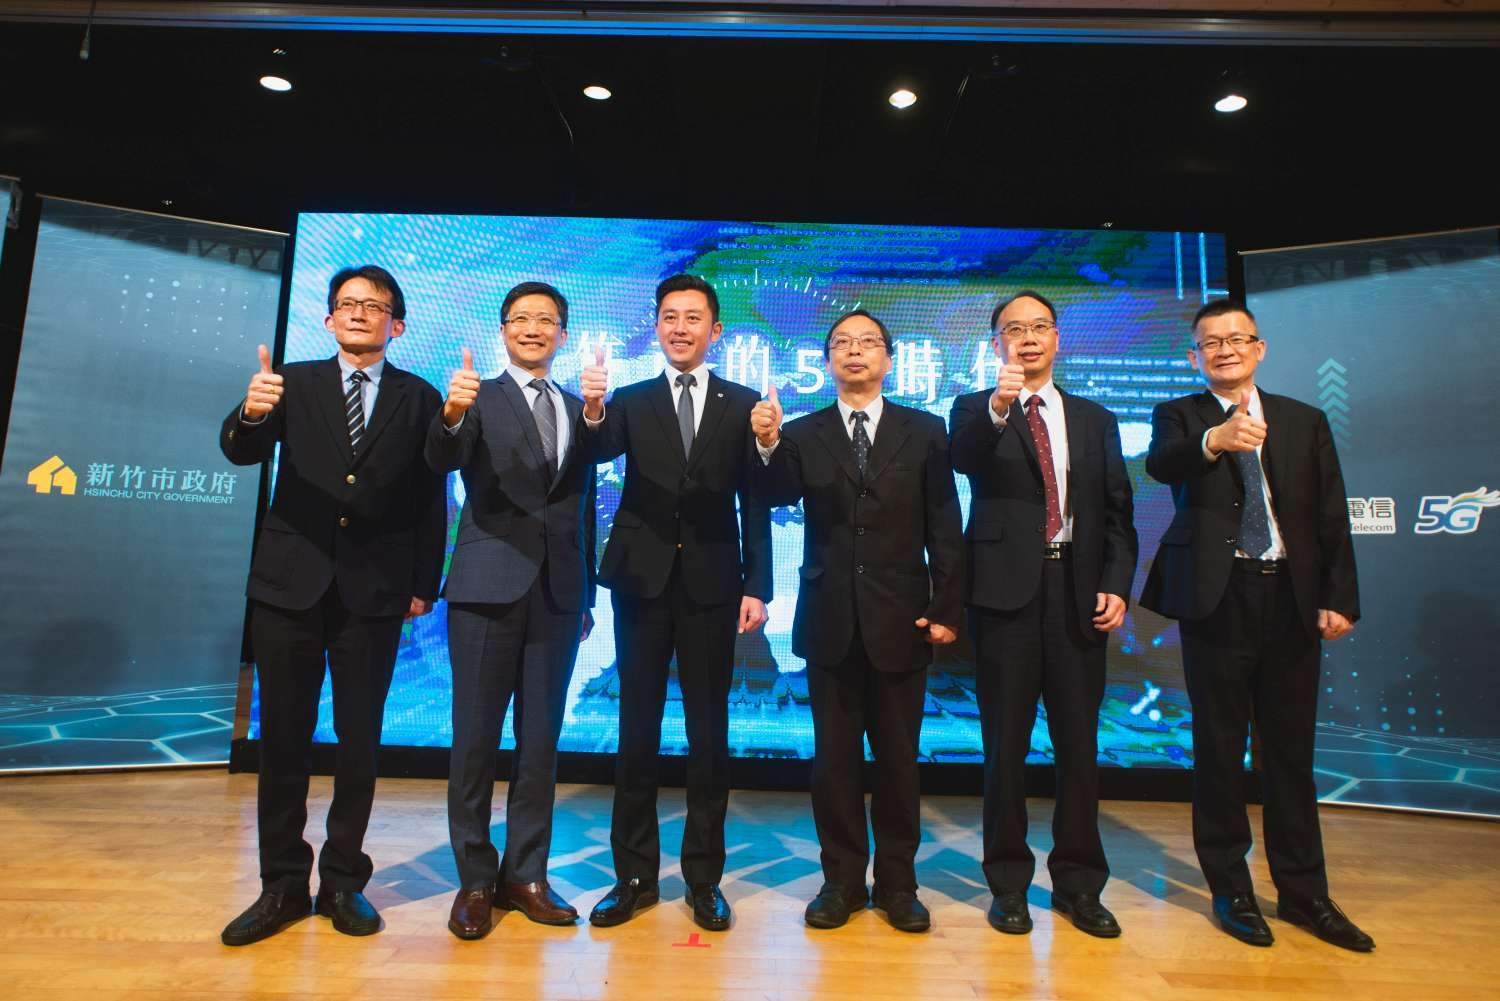 The first in Taiwan! Hsinchu City provides a 5G experimental field